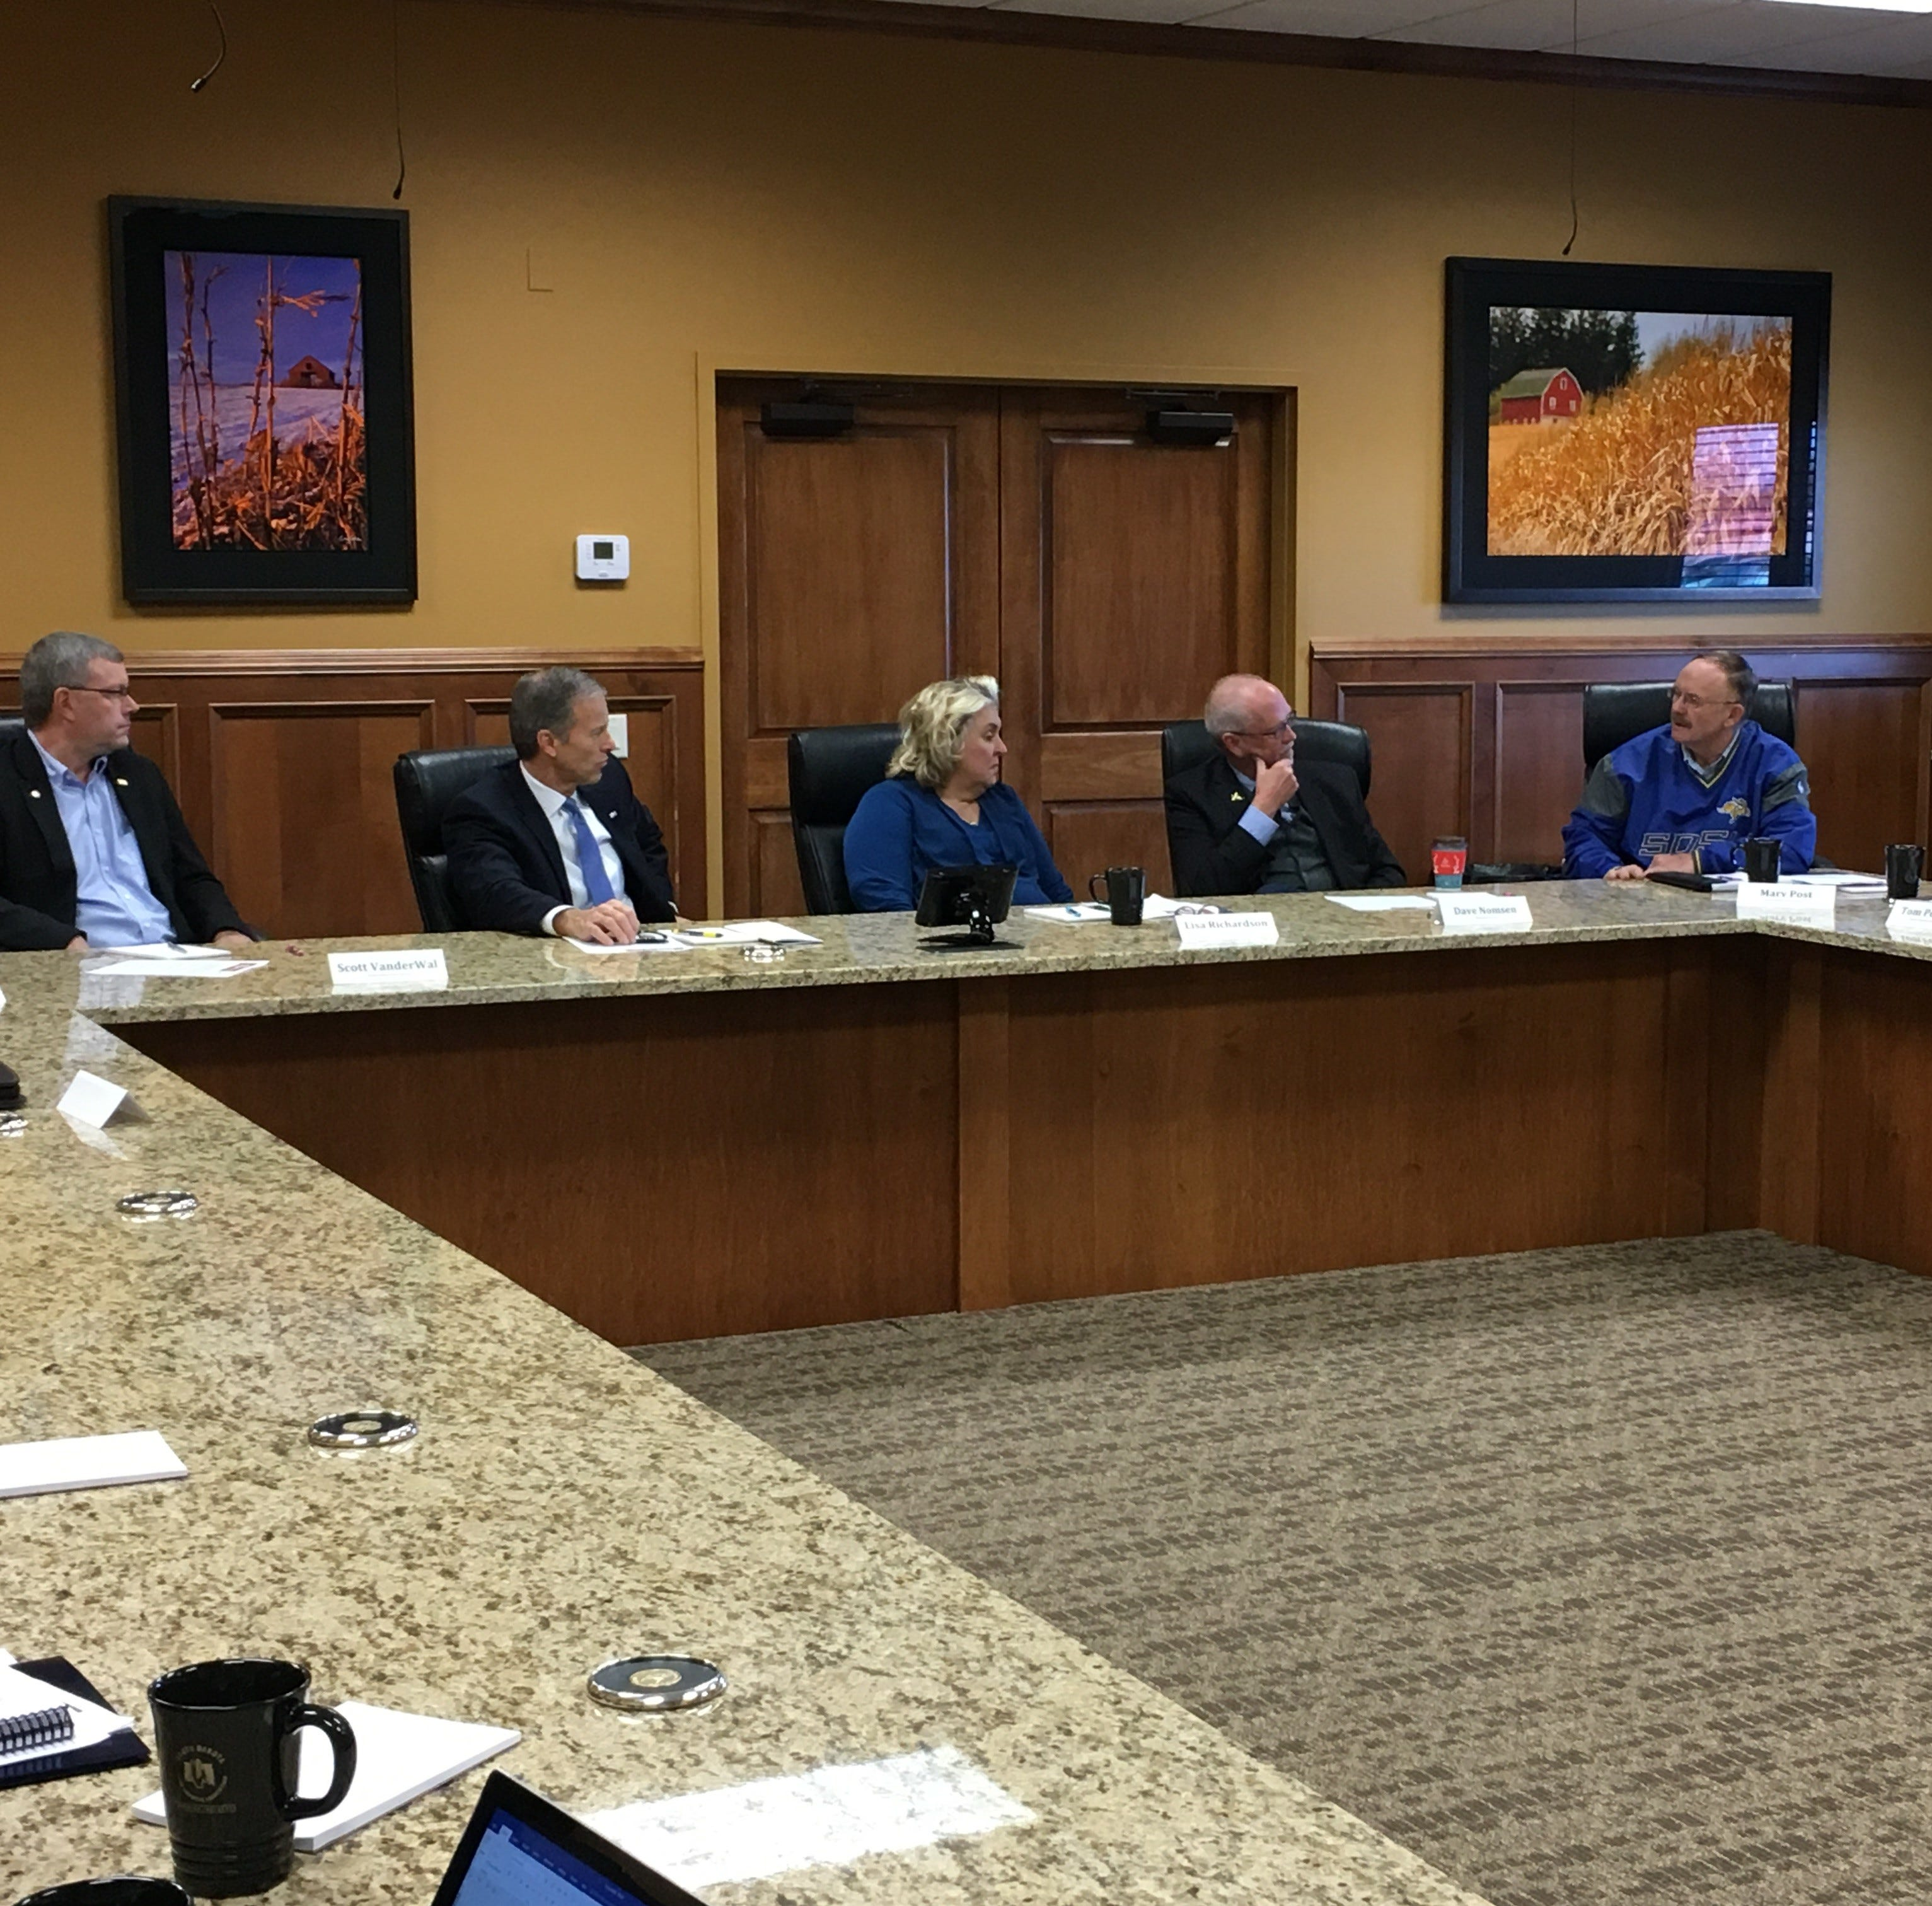 South Dakota agriculture leaders discussed tariffs and immigration with U.S. Sen. John Thune during a Friday morning roundtable in Sioux Falls.